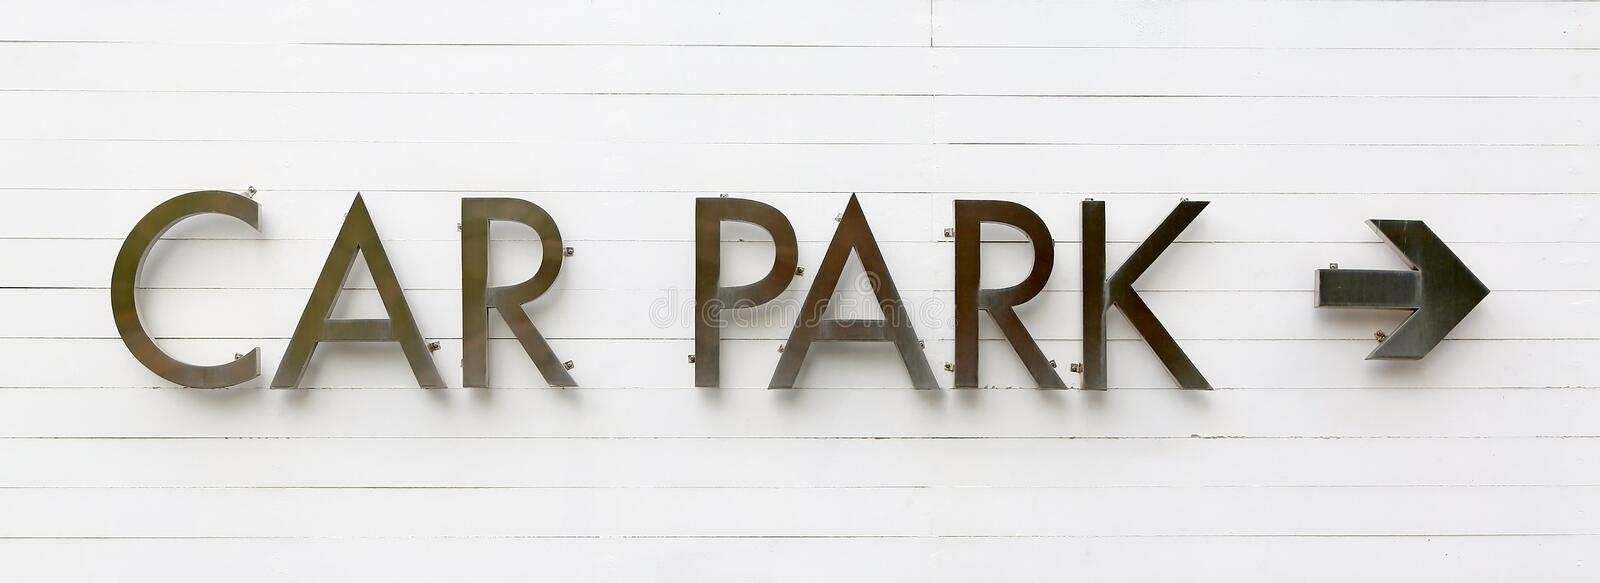 Car park sign with arrow on white wood plank royalty free stock photos